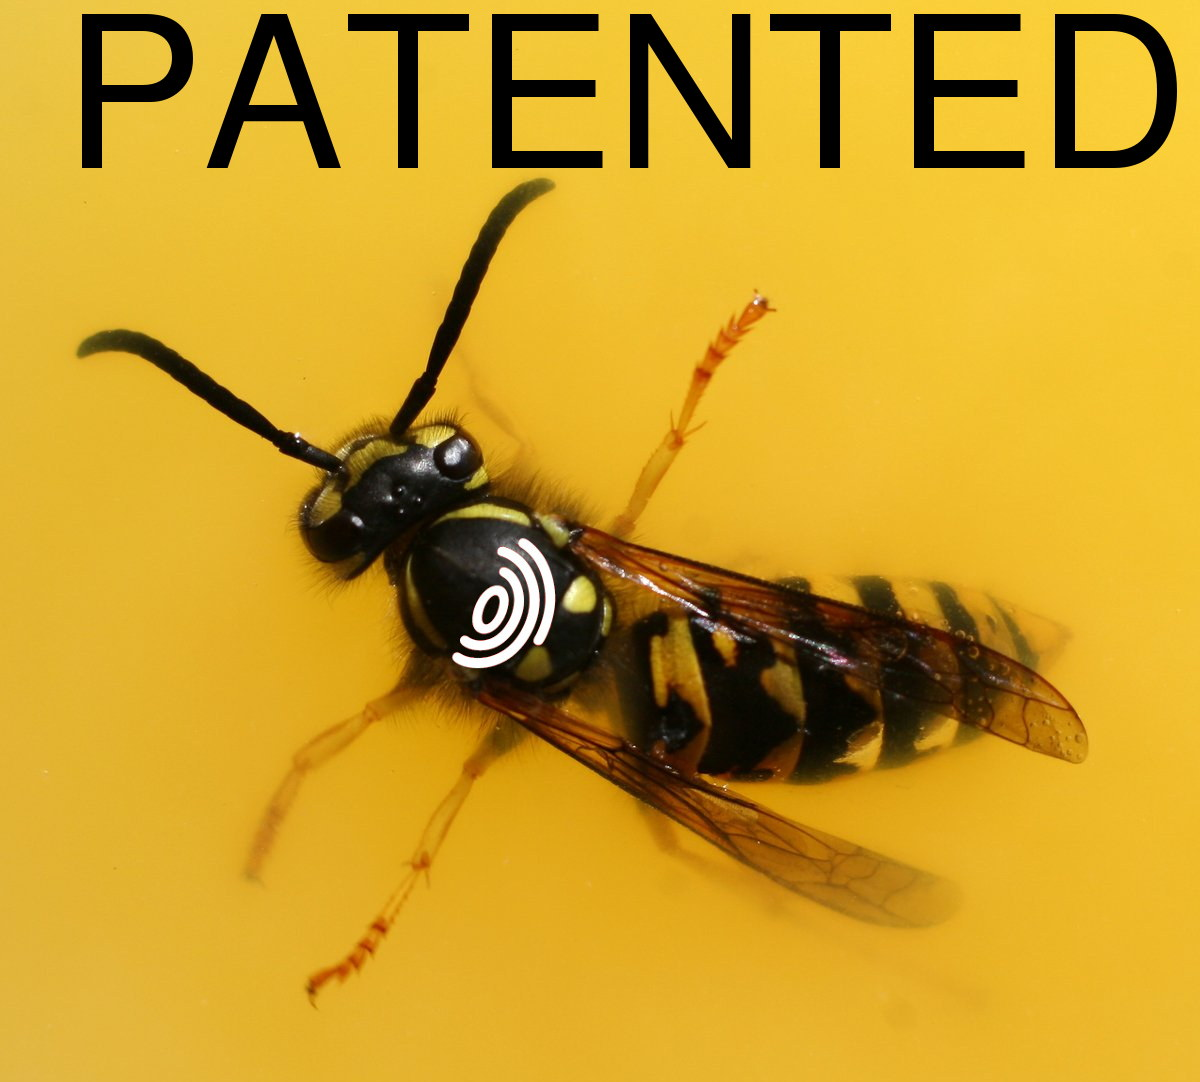 EPO patented wasp